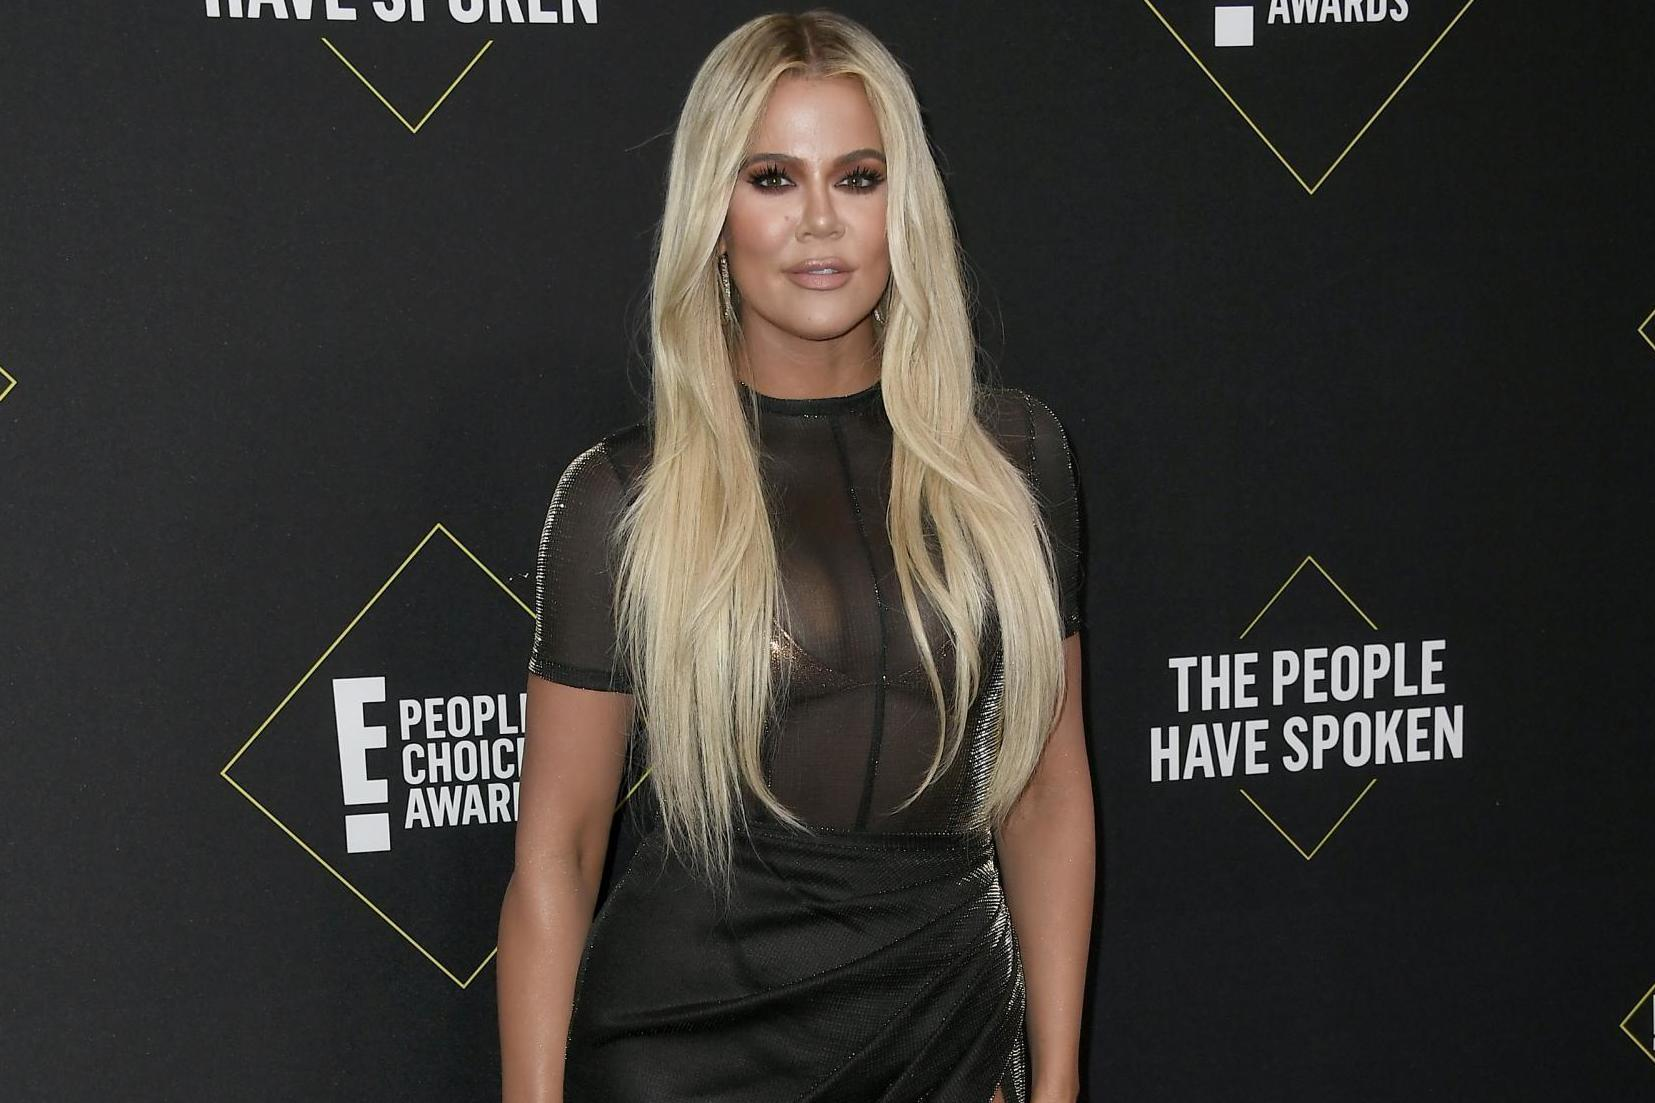 Khloe Kardashian admits to using nutritionist and personal trainer while promoting weight-loss shakes